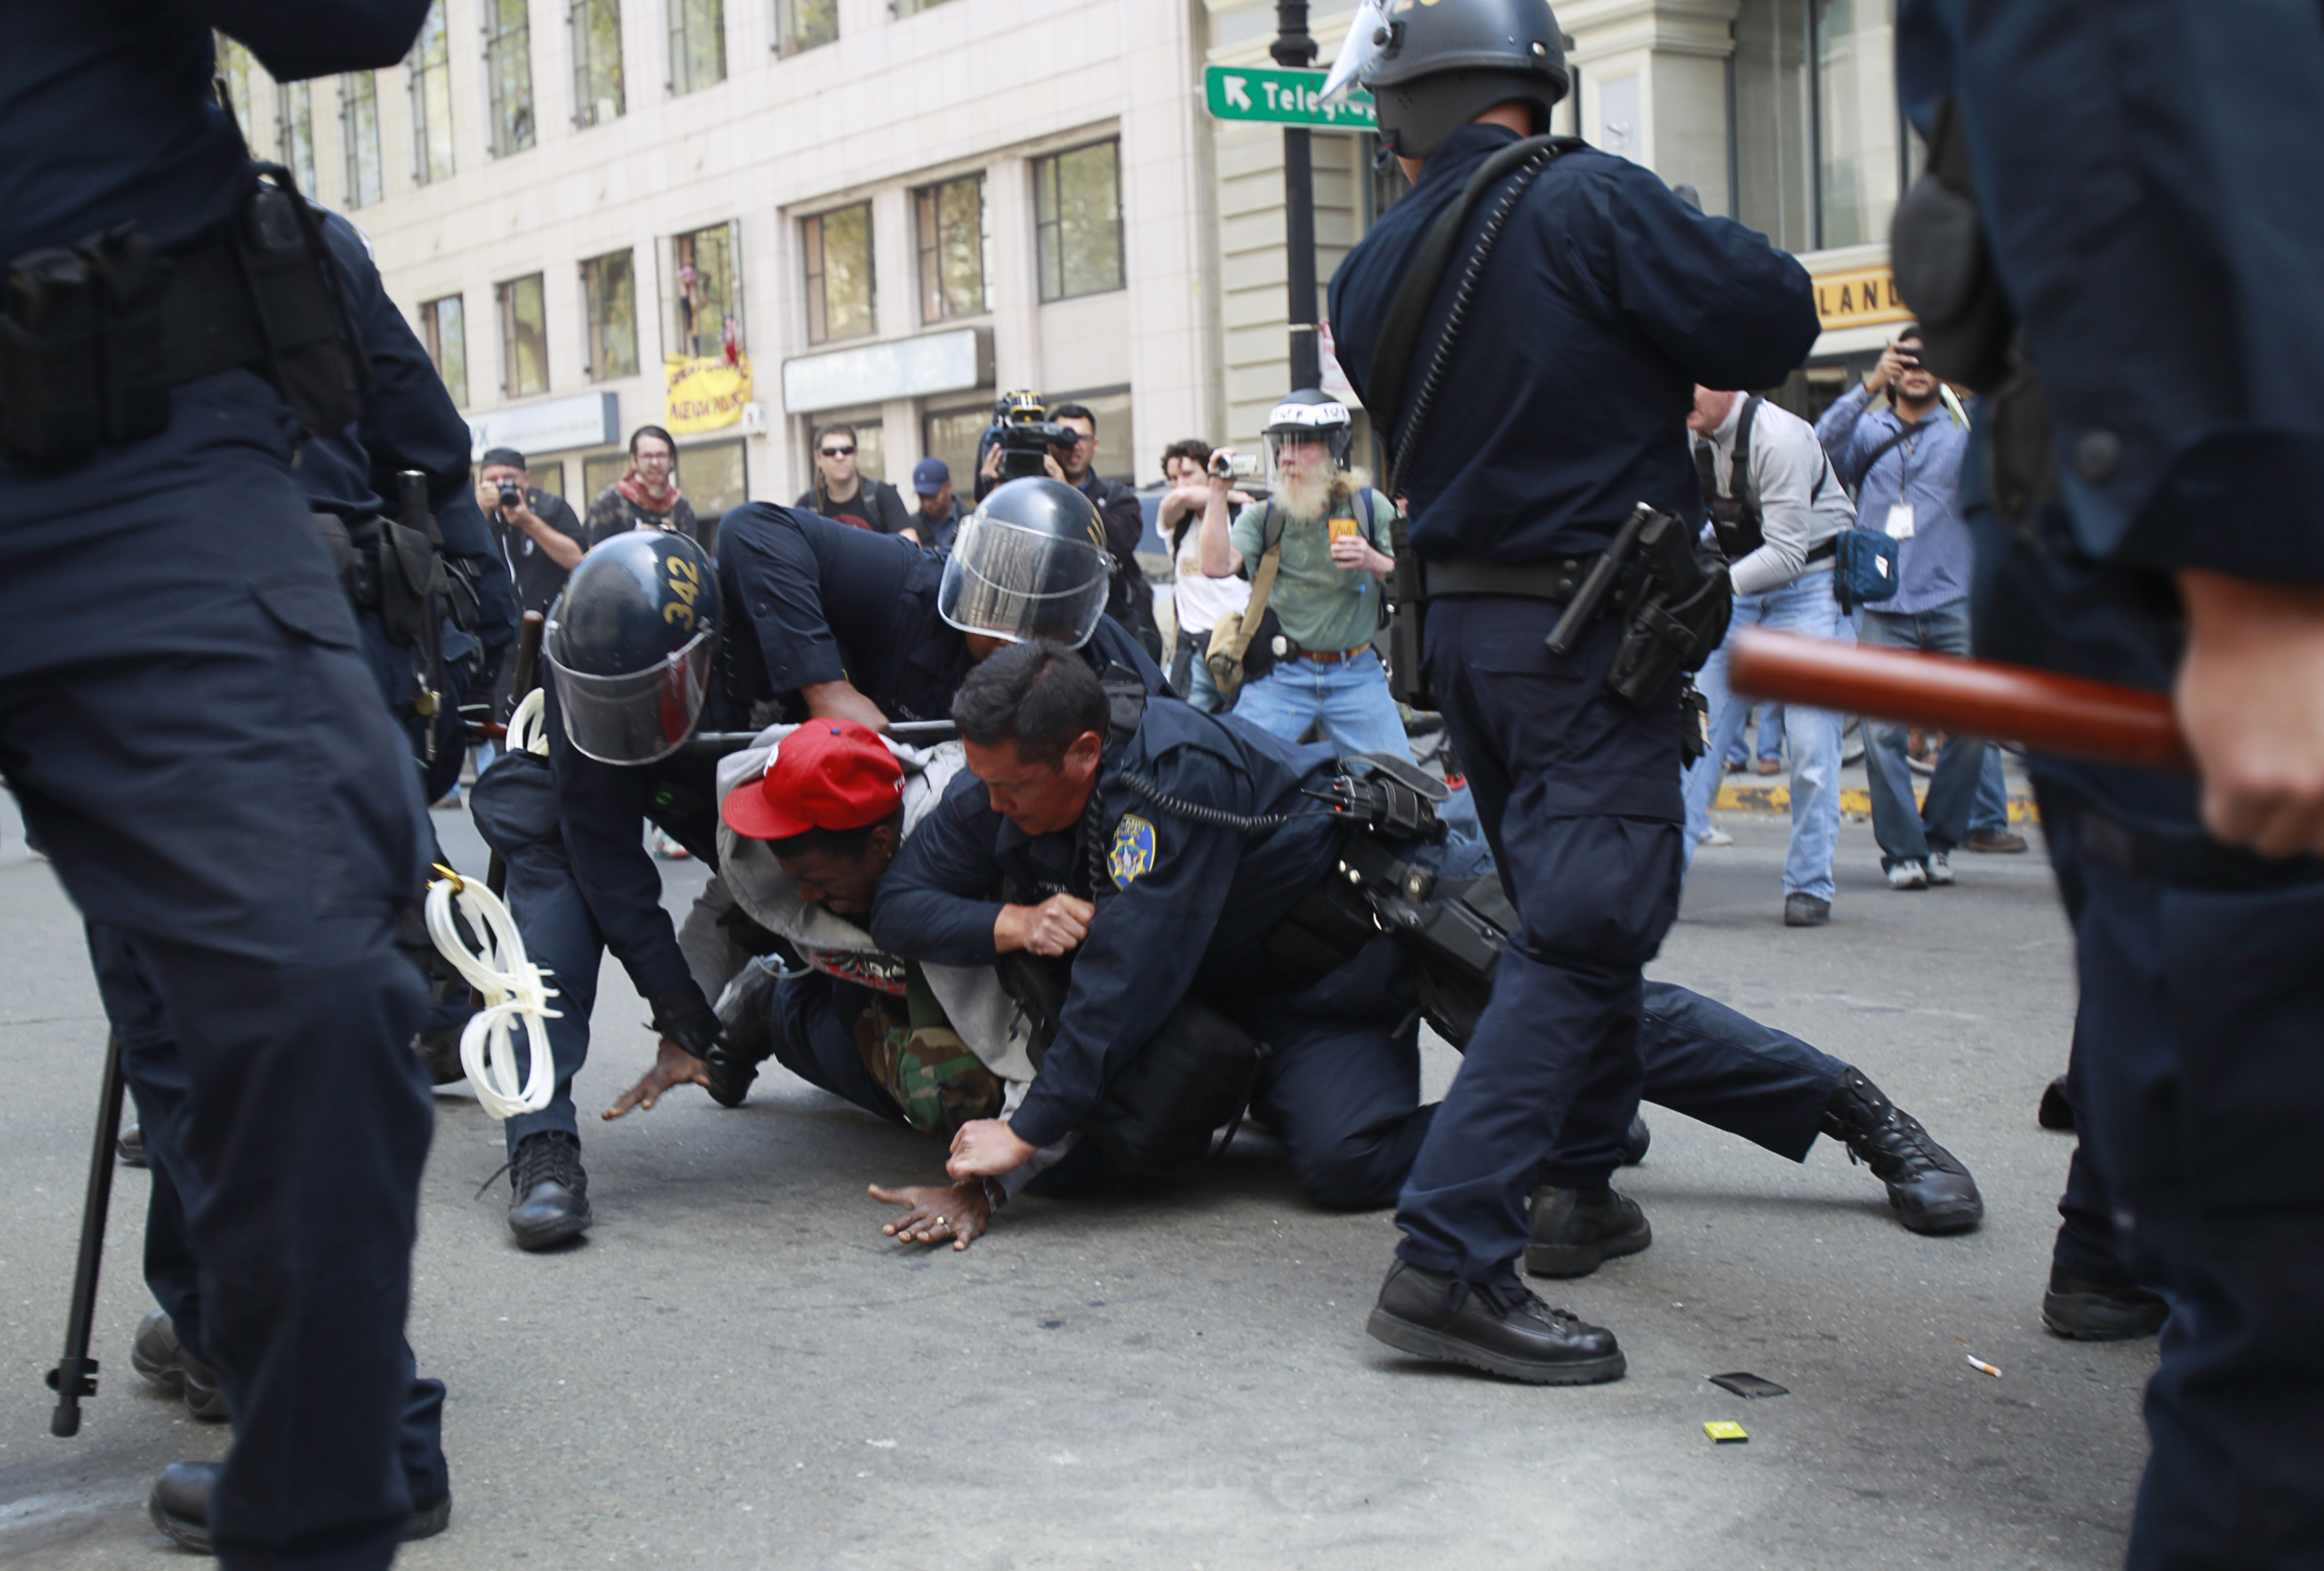 Occupy demonstrators clash with Oakland police during May Day protest in Oakland, California on May 1, 2012.